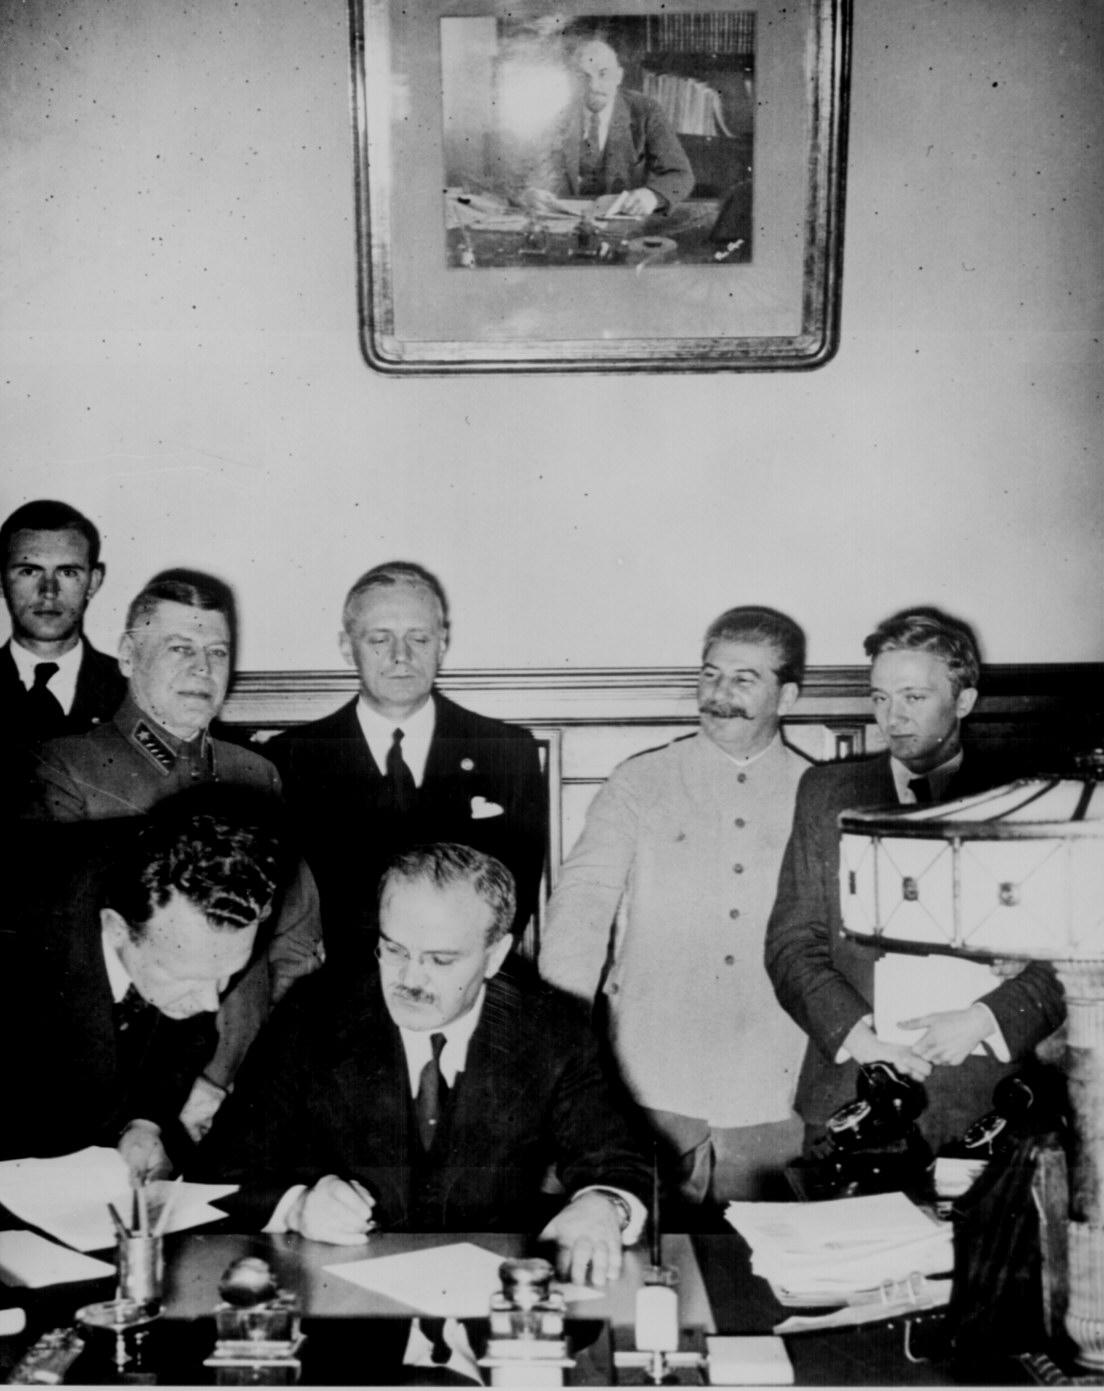 Signing of the German-Soviet Nonaggression Pact